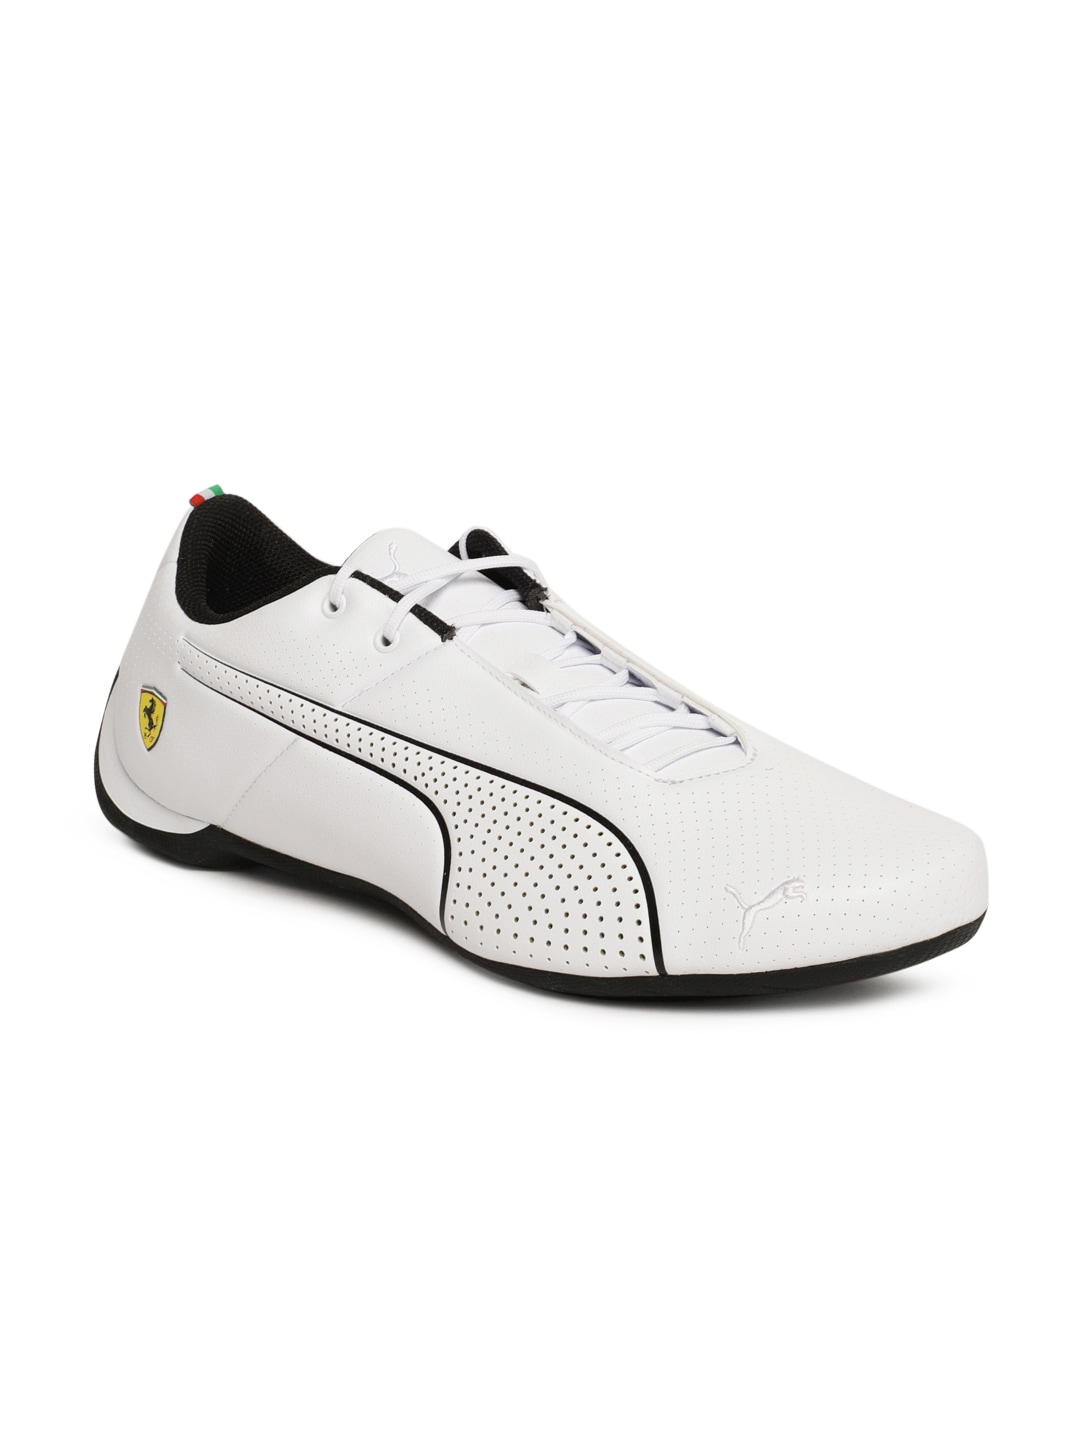 ac457ee91de Puma Future Cat M1 - Buy Puma Future Cat M1 online in India